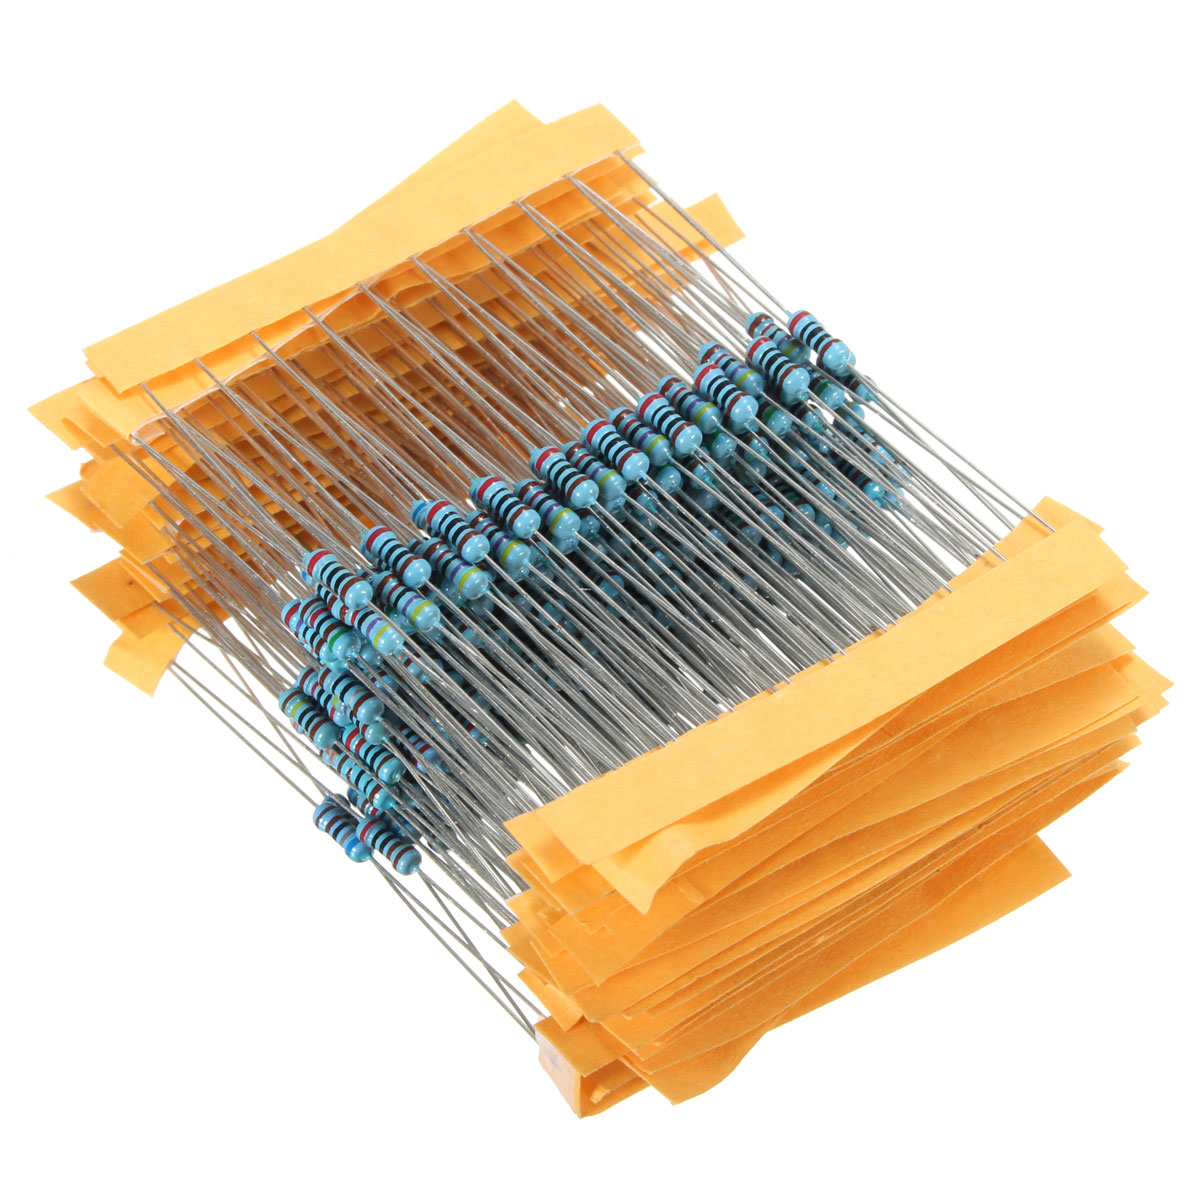 New 300Pcs DIY Led Excellent Professiona Resistors Metal Film 300 Pack 10 Each 30 Values 1/4w 1% Kit/Assortment Chip Set